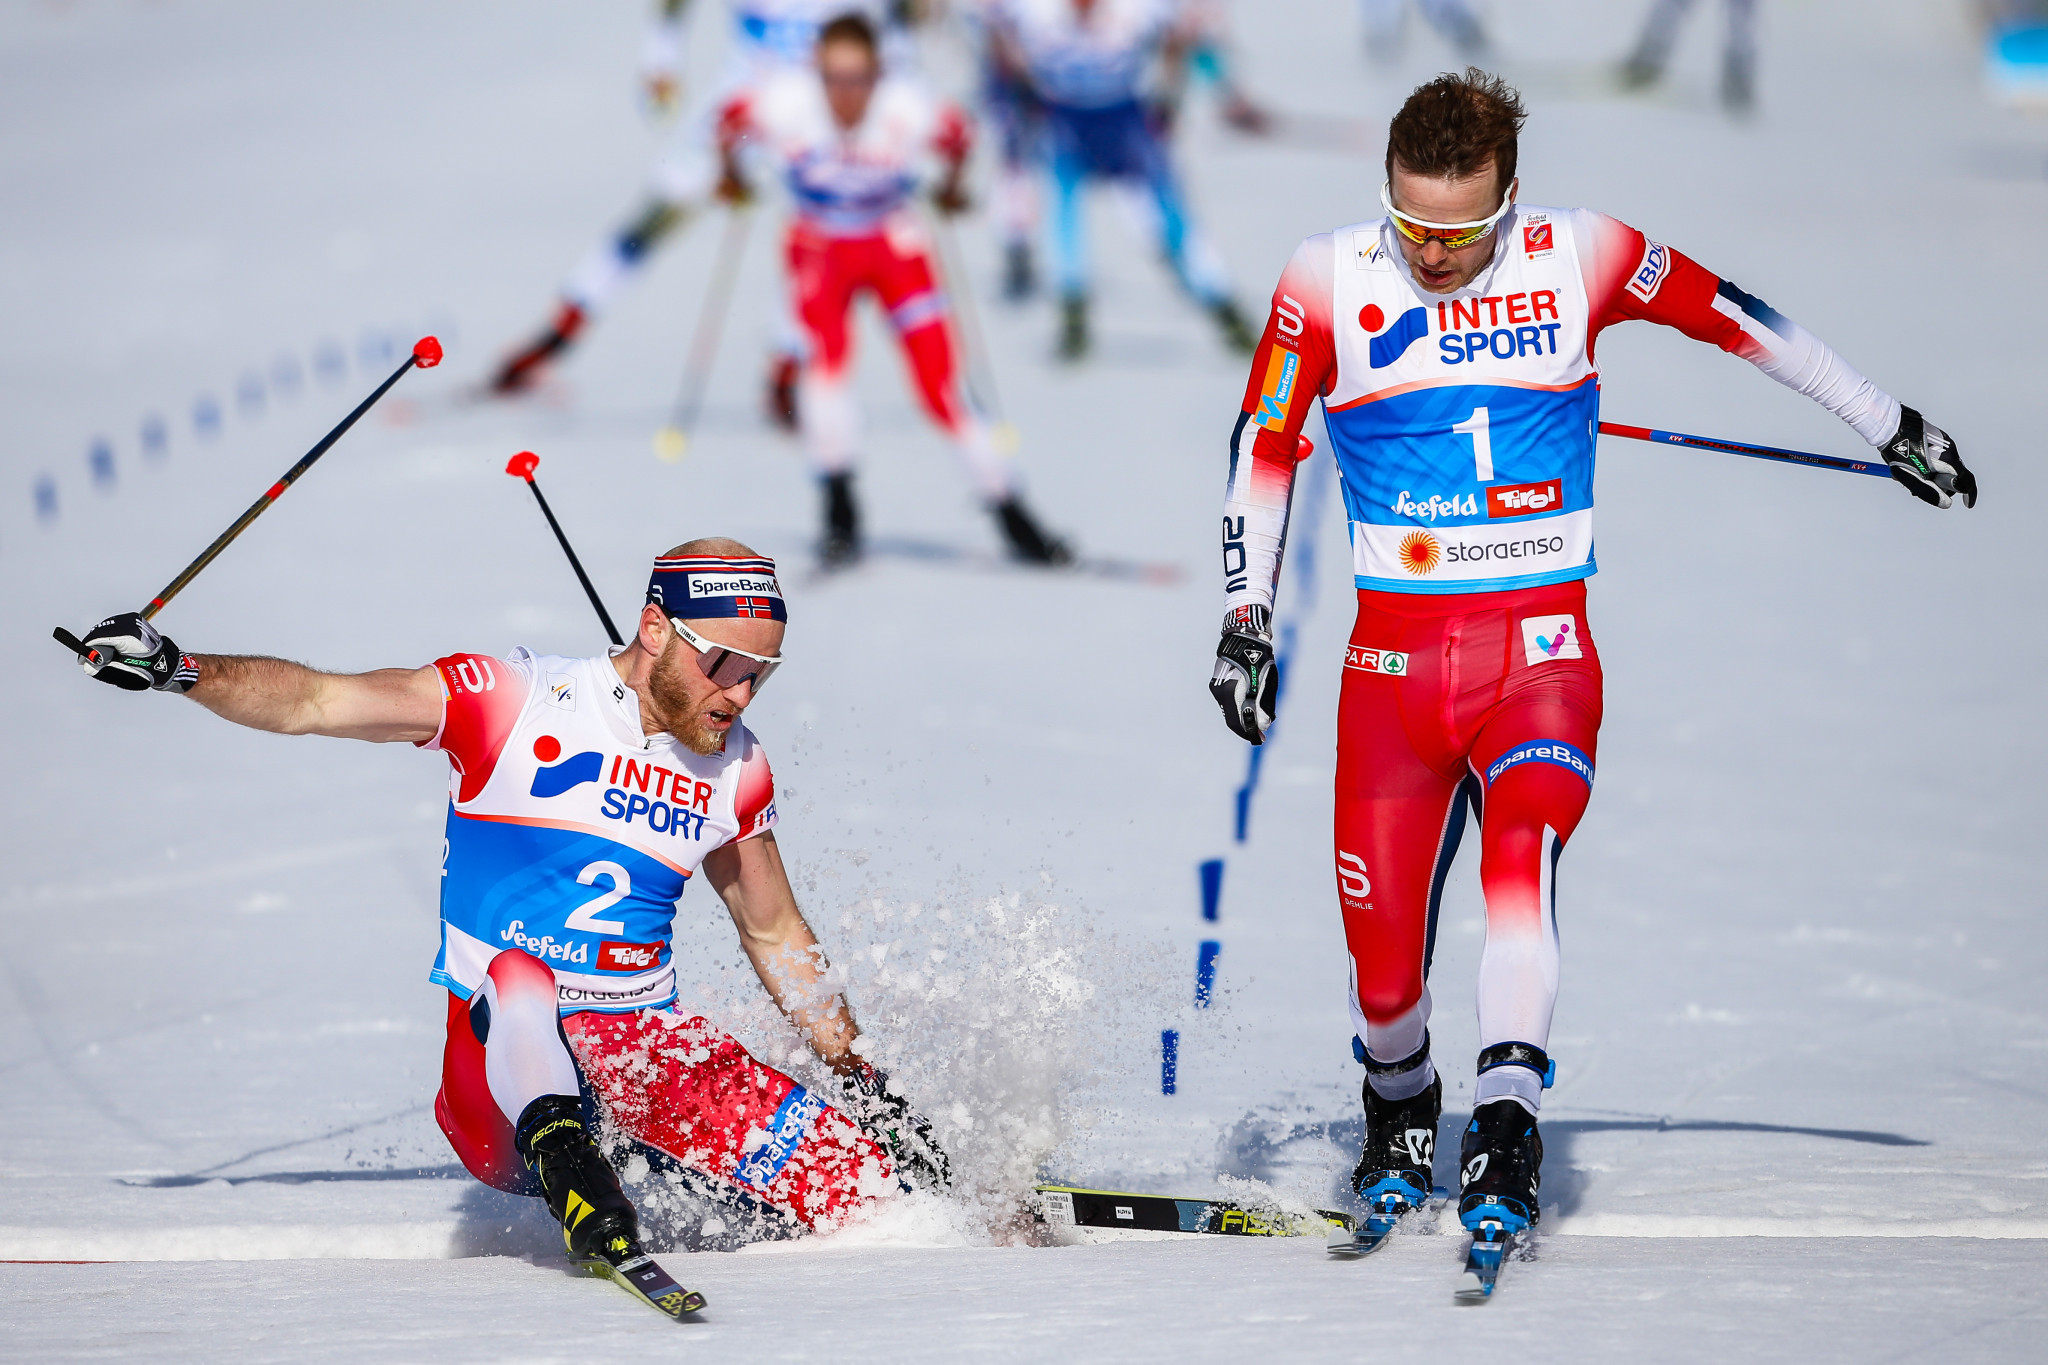 Norway dominated the cross-country events at the Nordic World Championships in Seefeld ©Getty Images